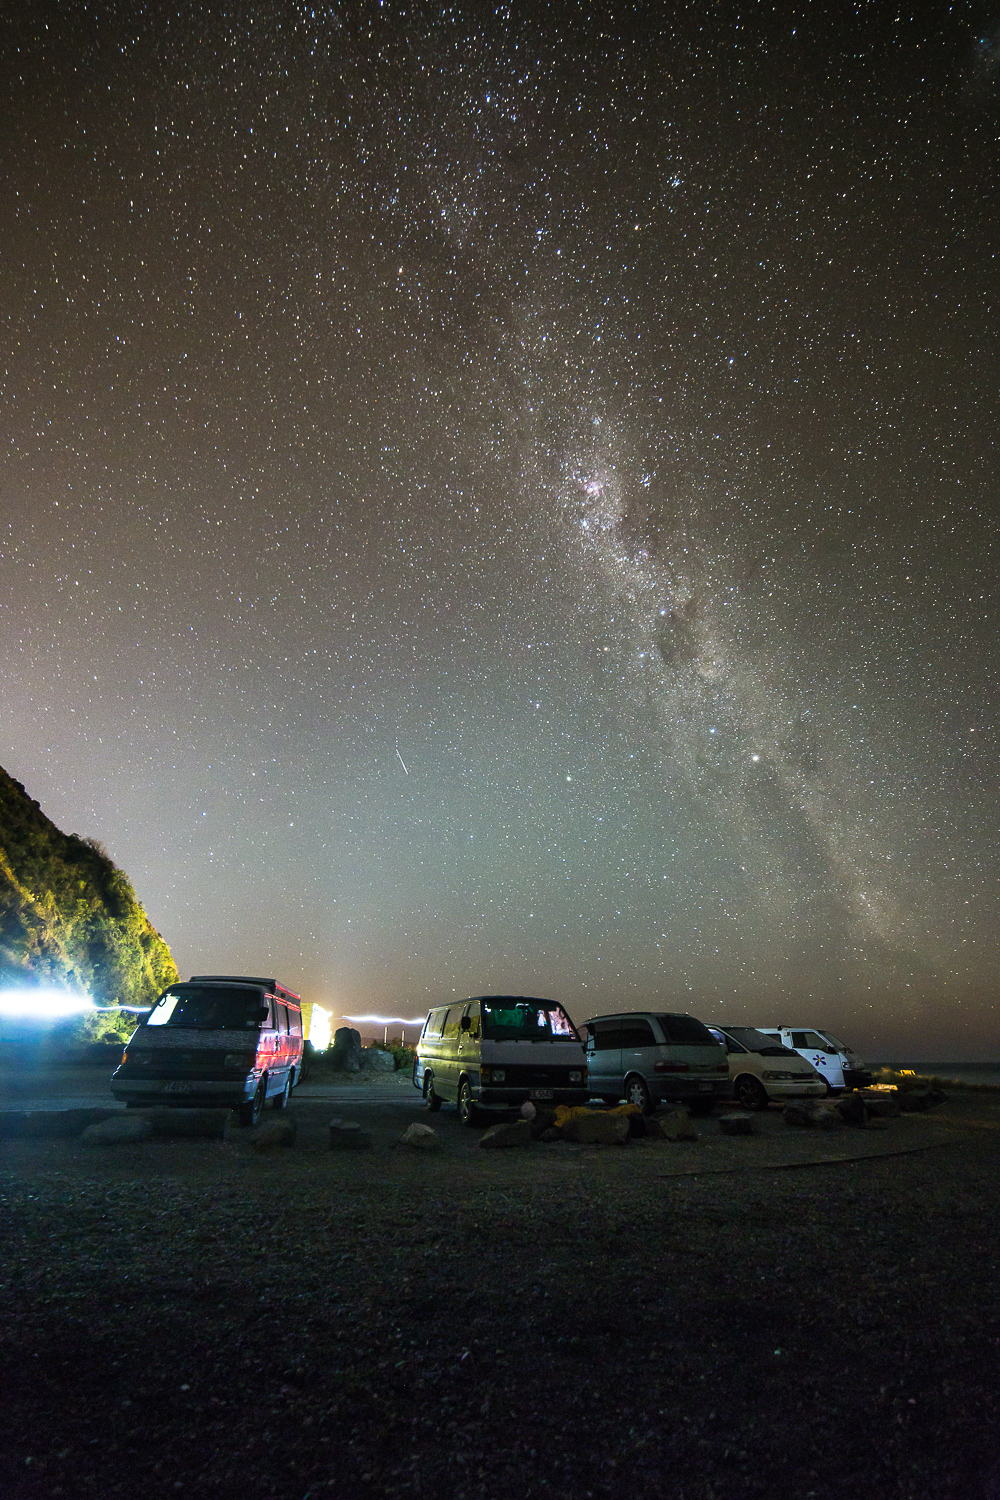 Freedom campers underneath the milky way